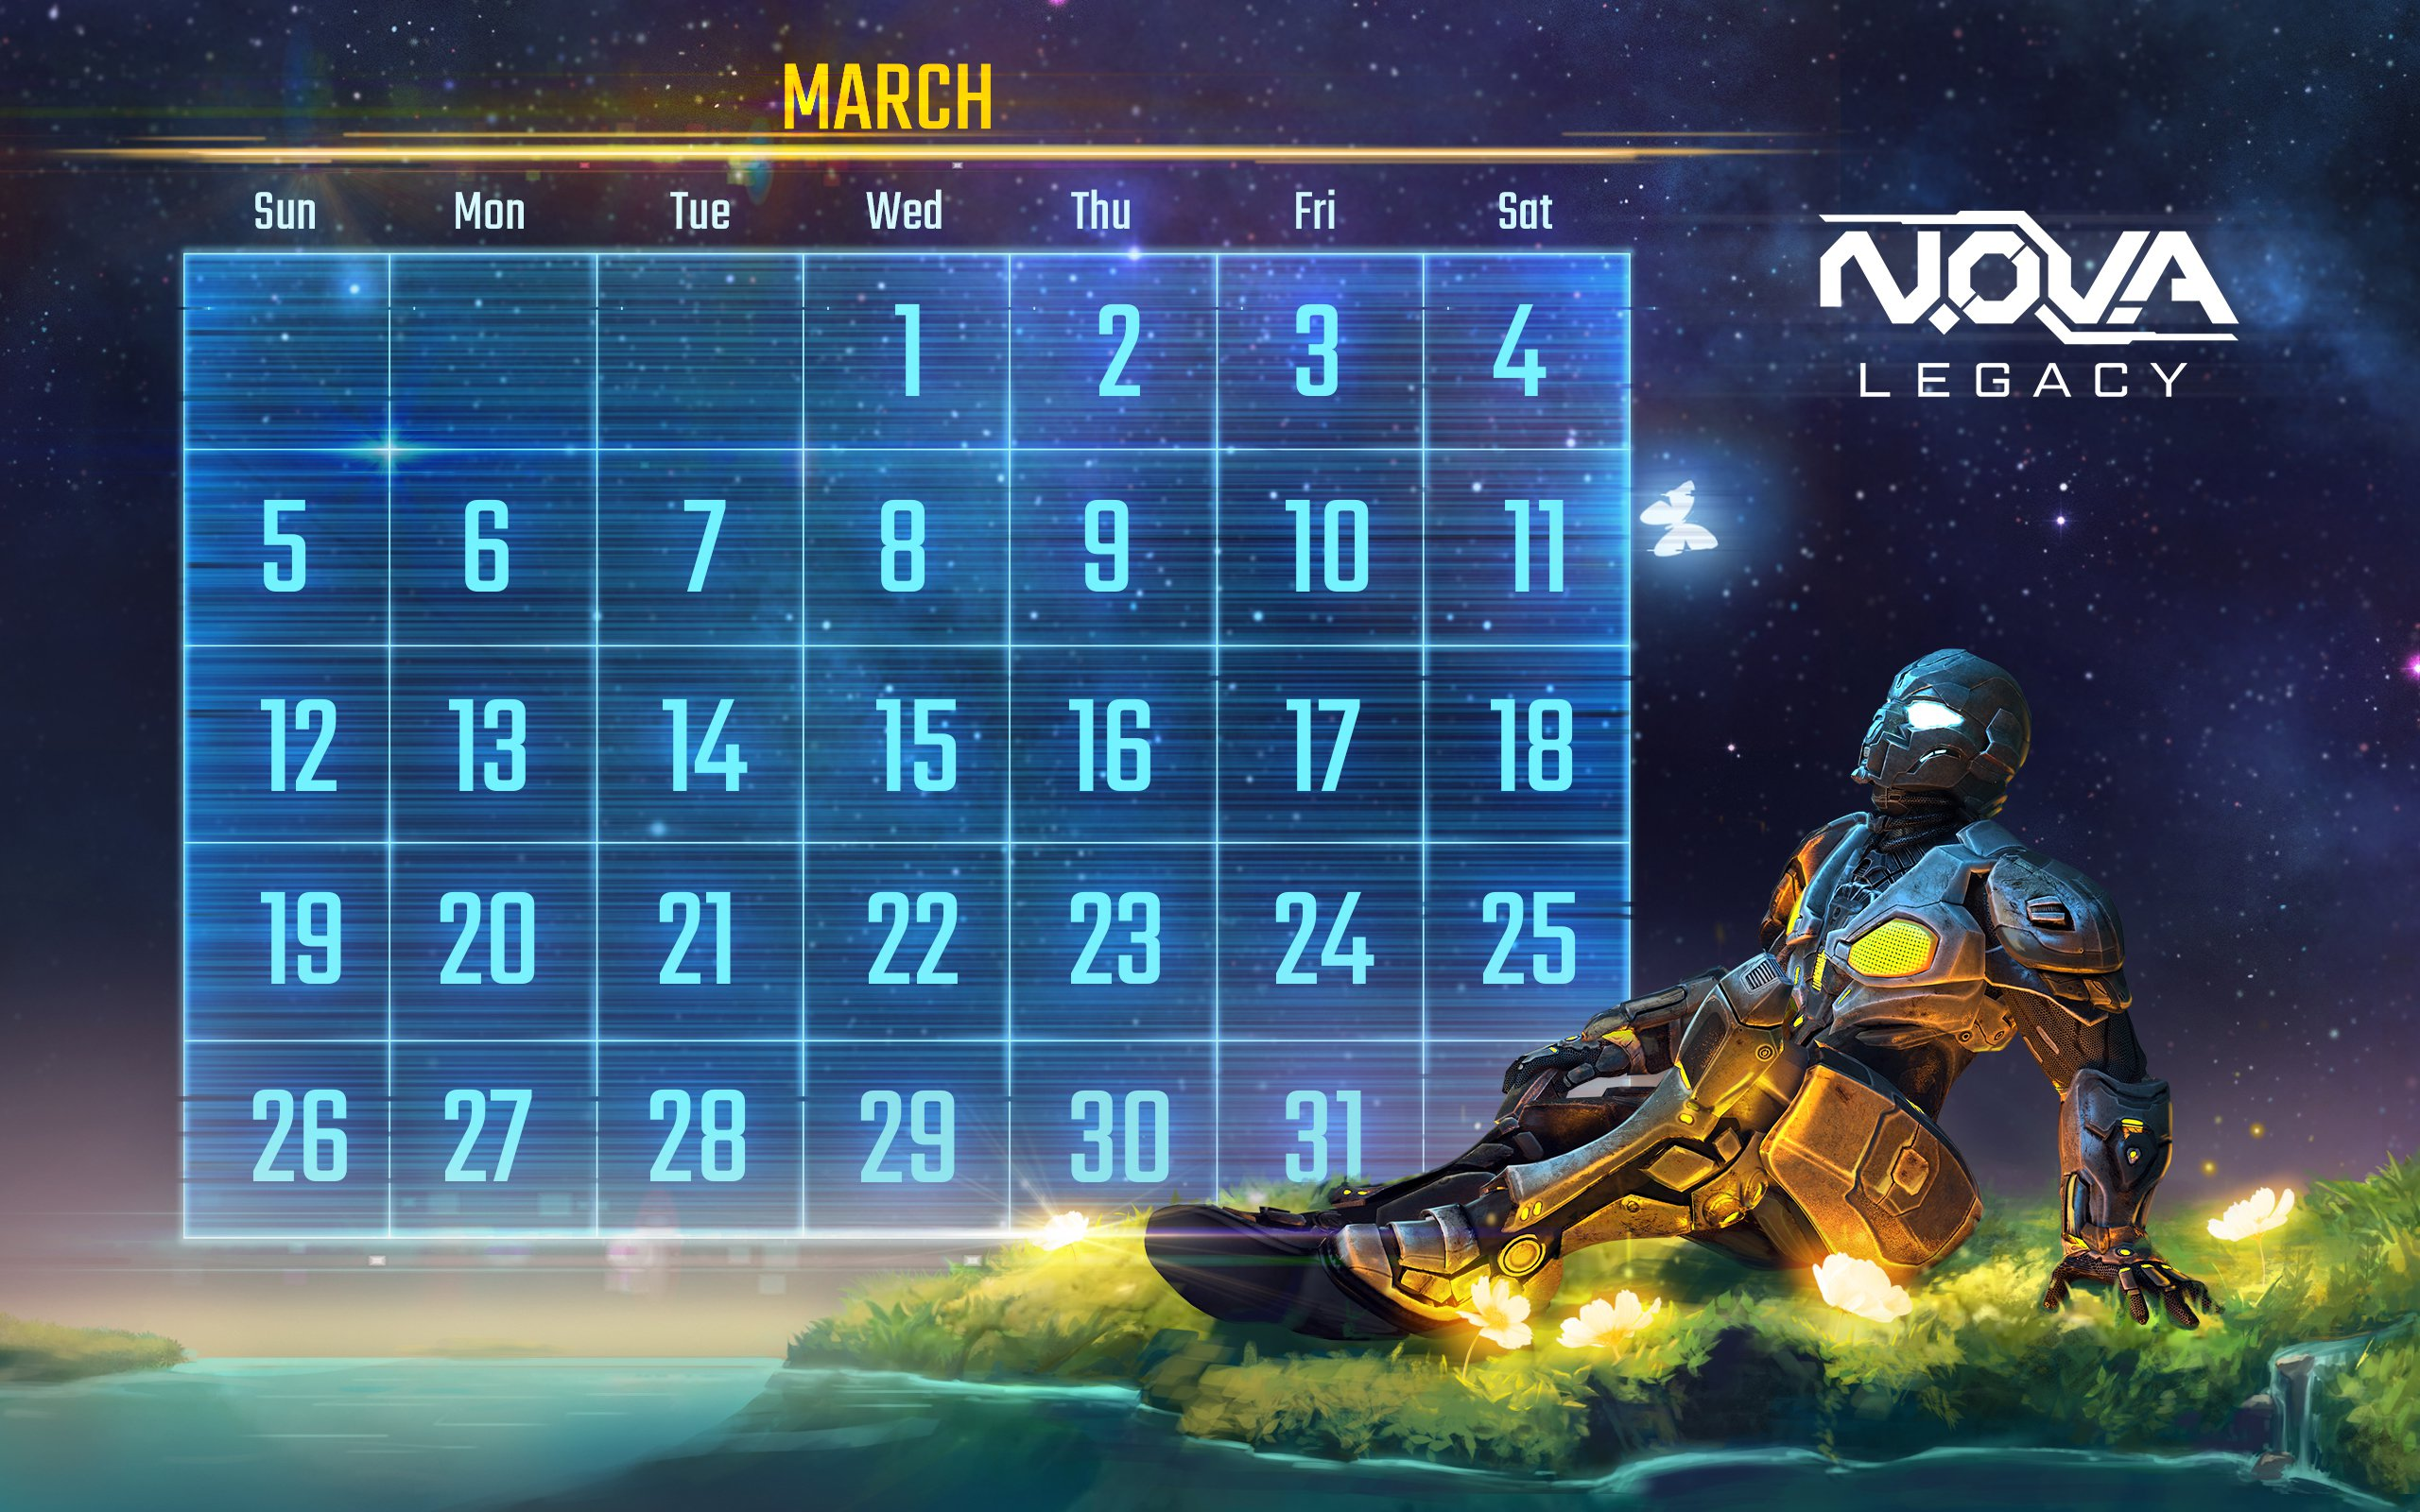 Download NOVA Legacy calendar and wallpaper March   Gameloft 2560x1600